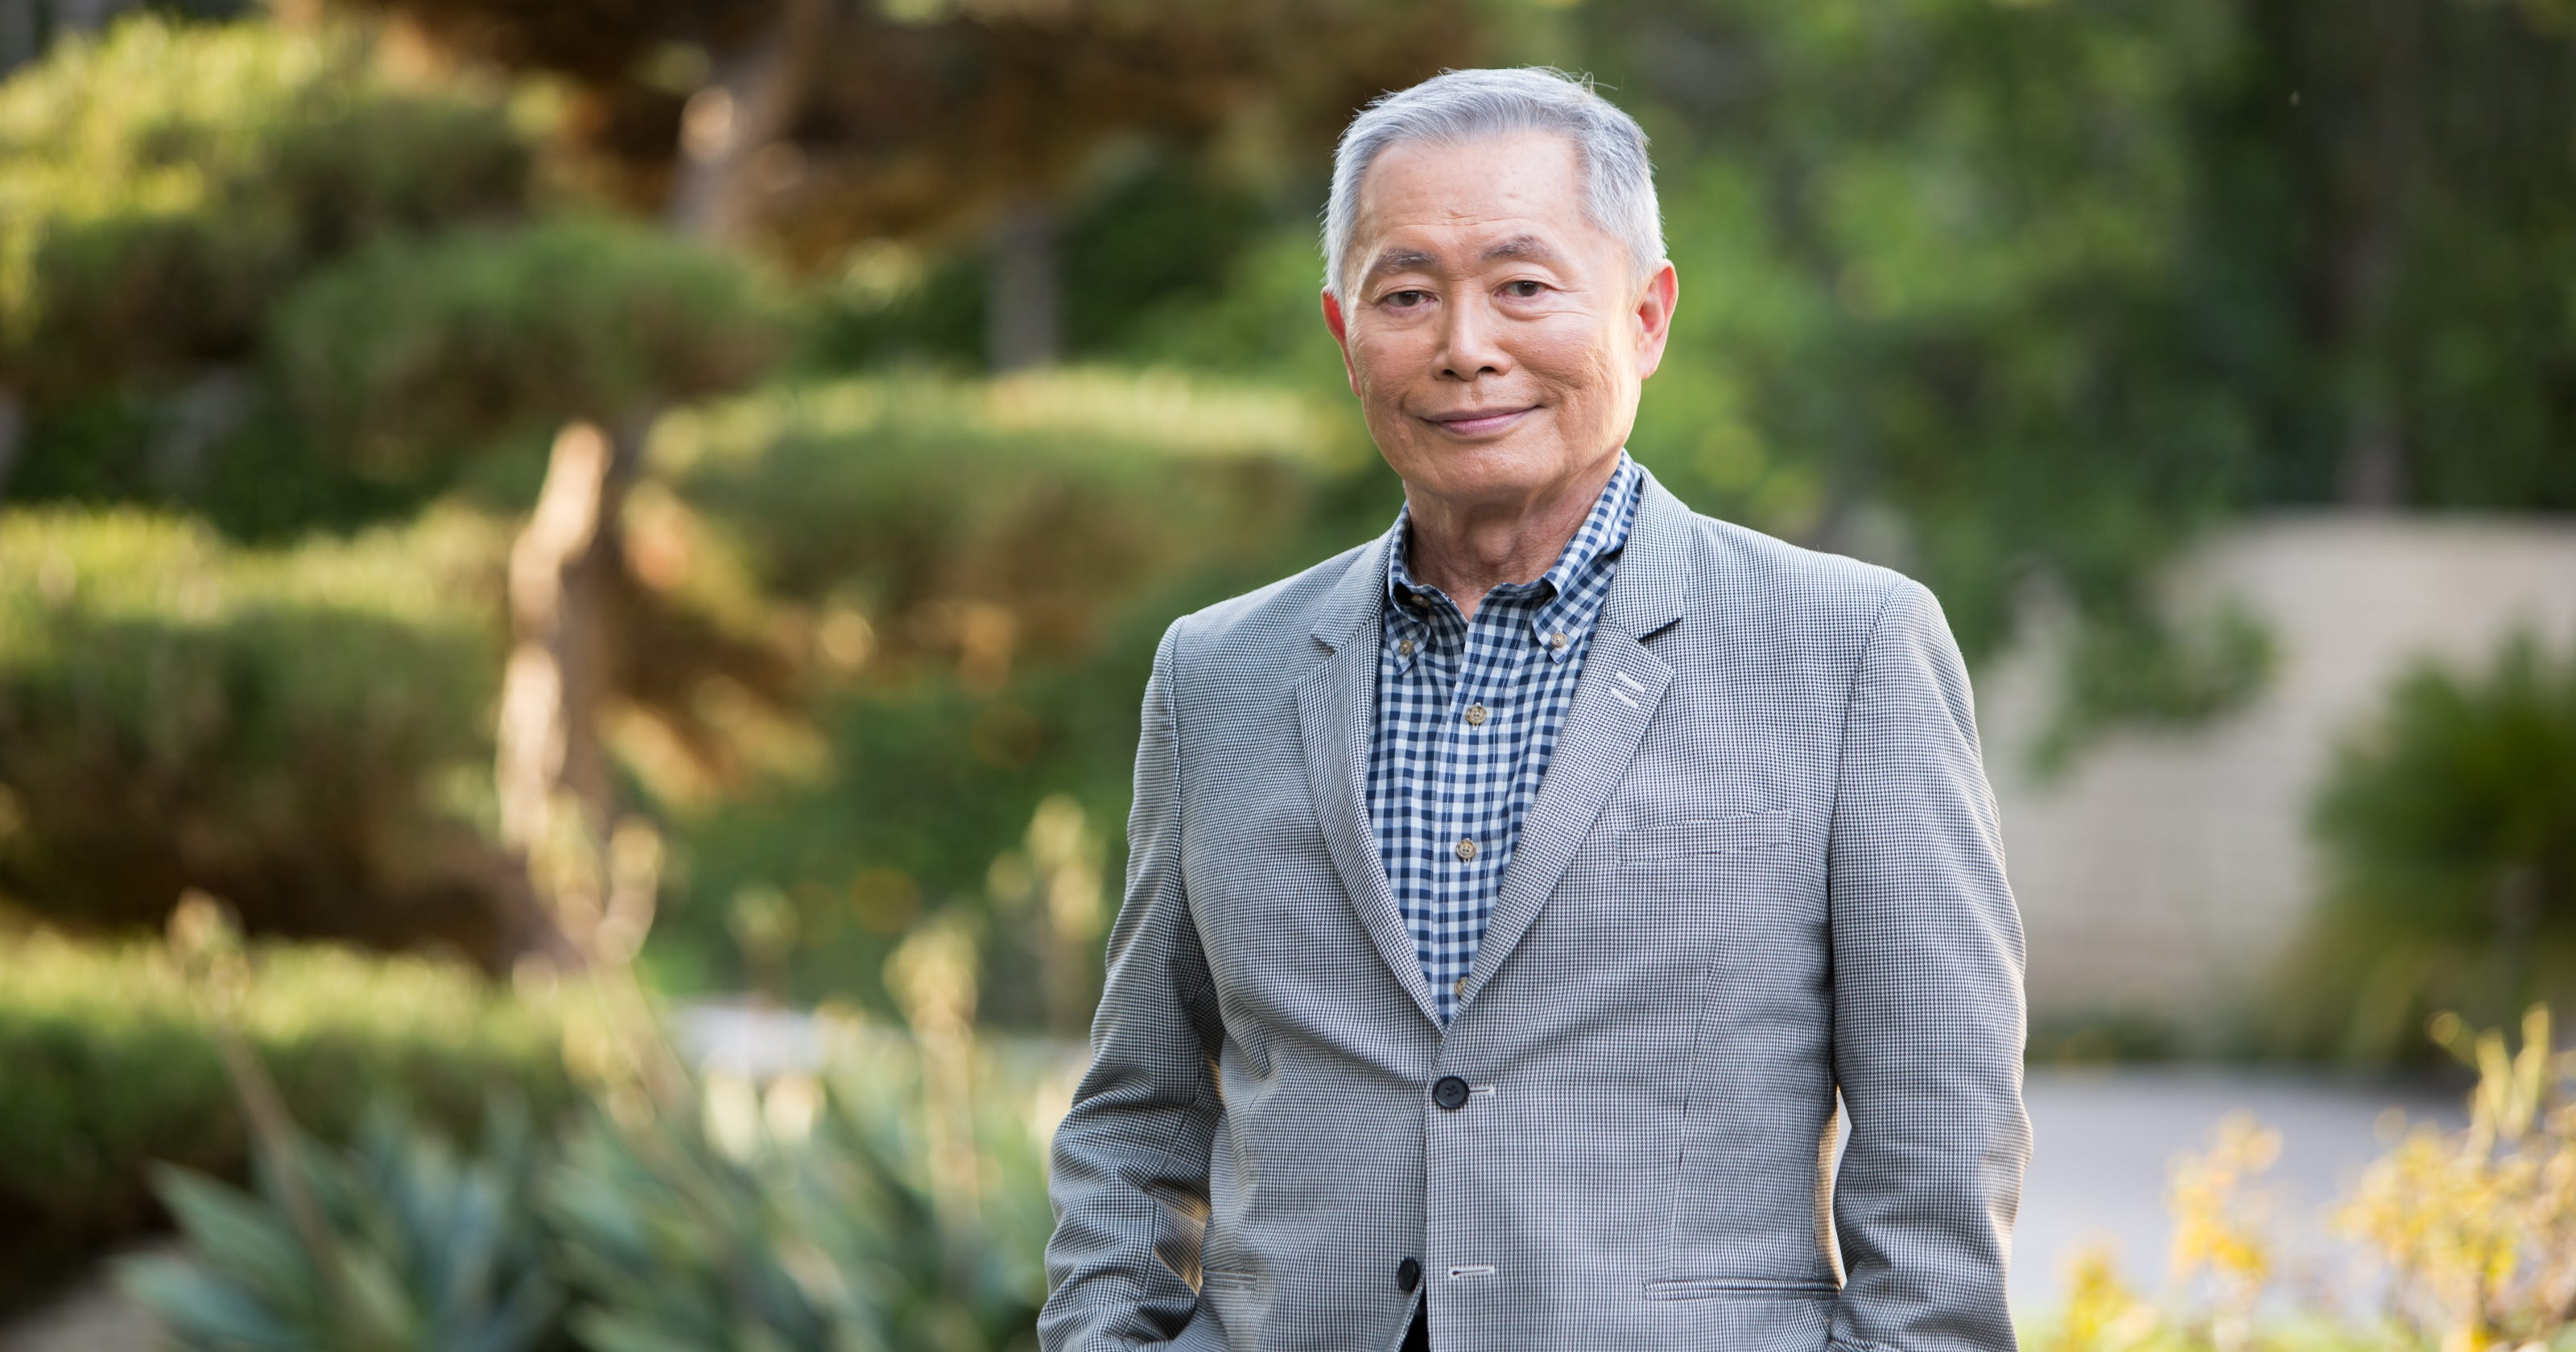 Beam me up, Kentucky? George Takei tweets he's 'tempted' to take on Mitch McConnell